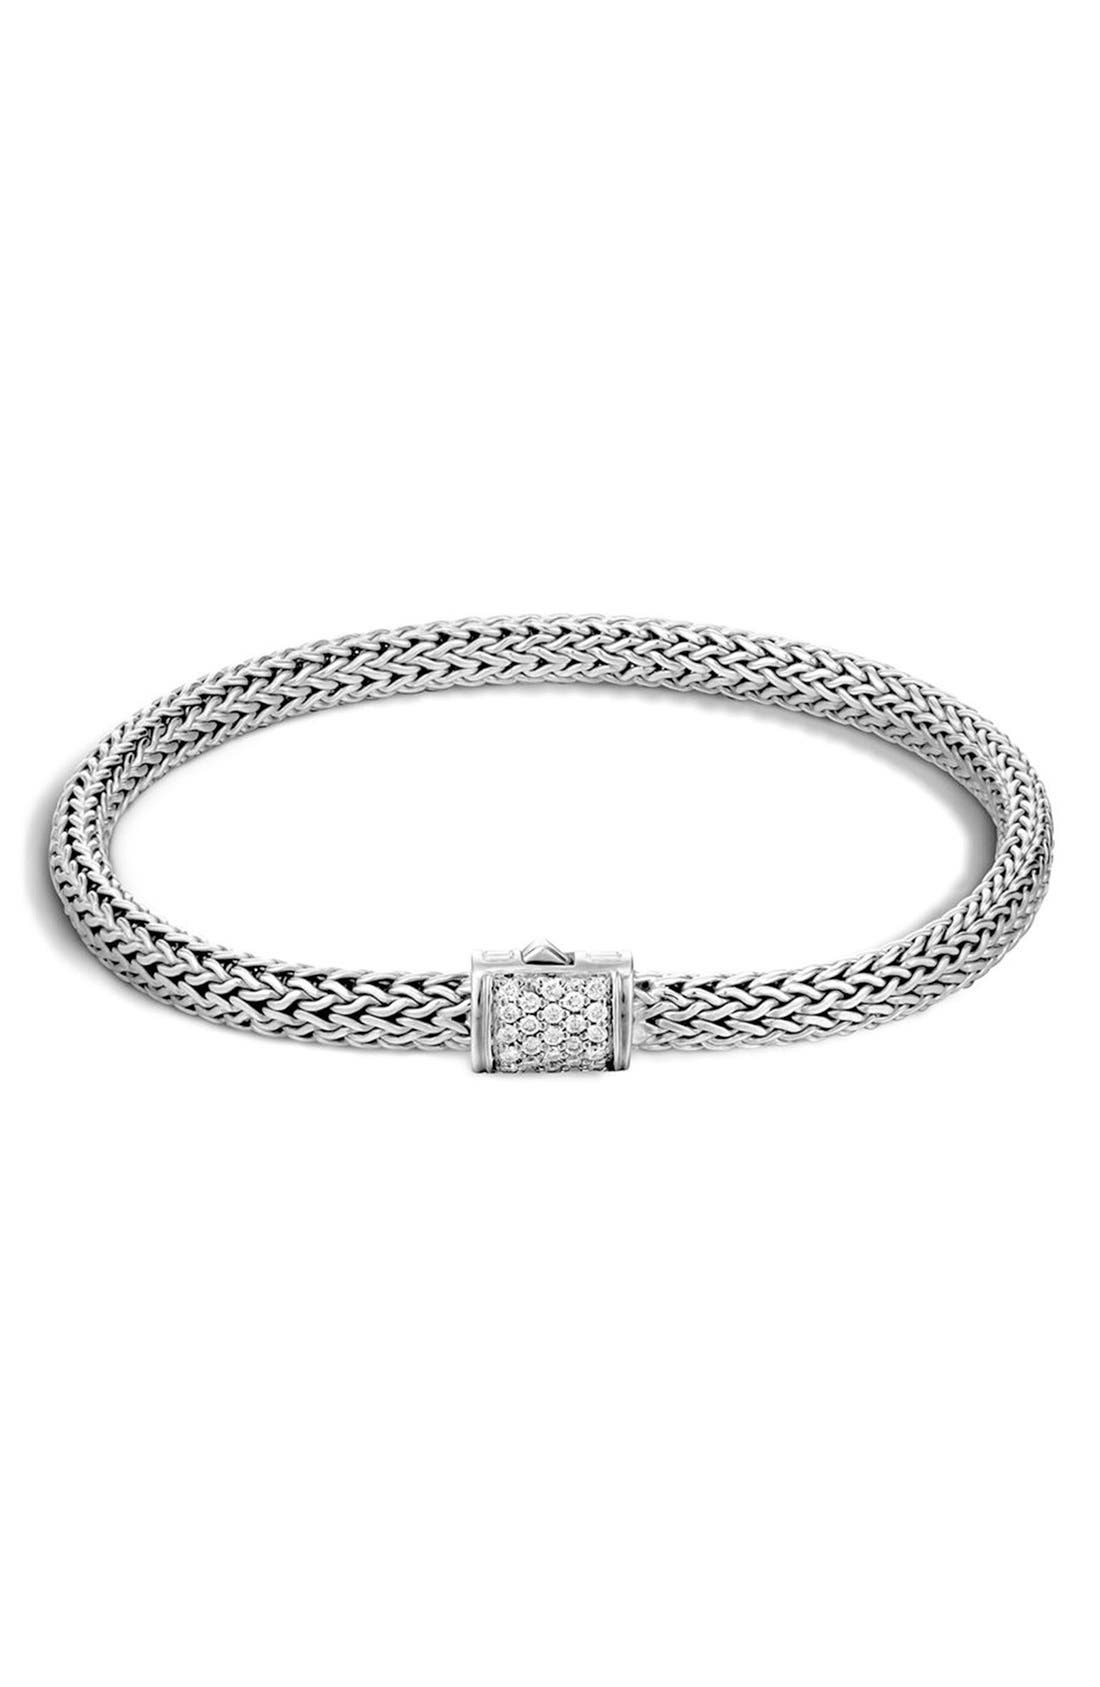 JOHN HARDY Classic Chain 5mm Diamond Bracelet